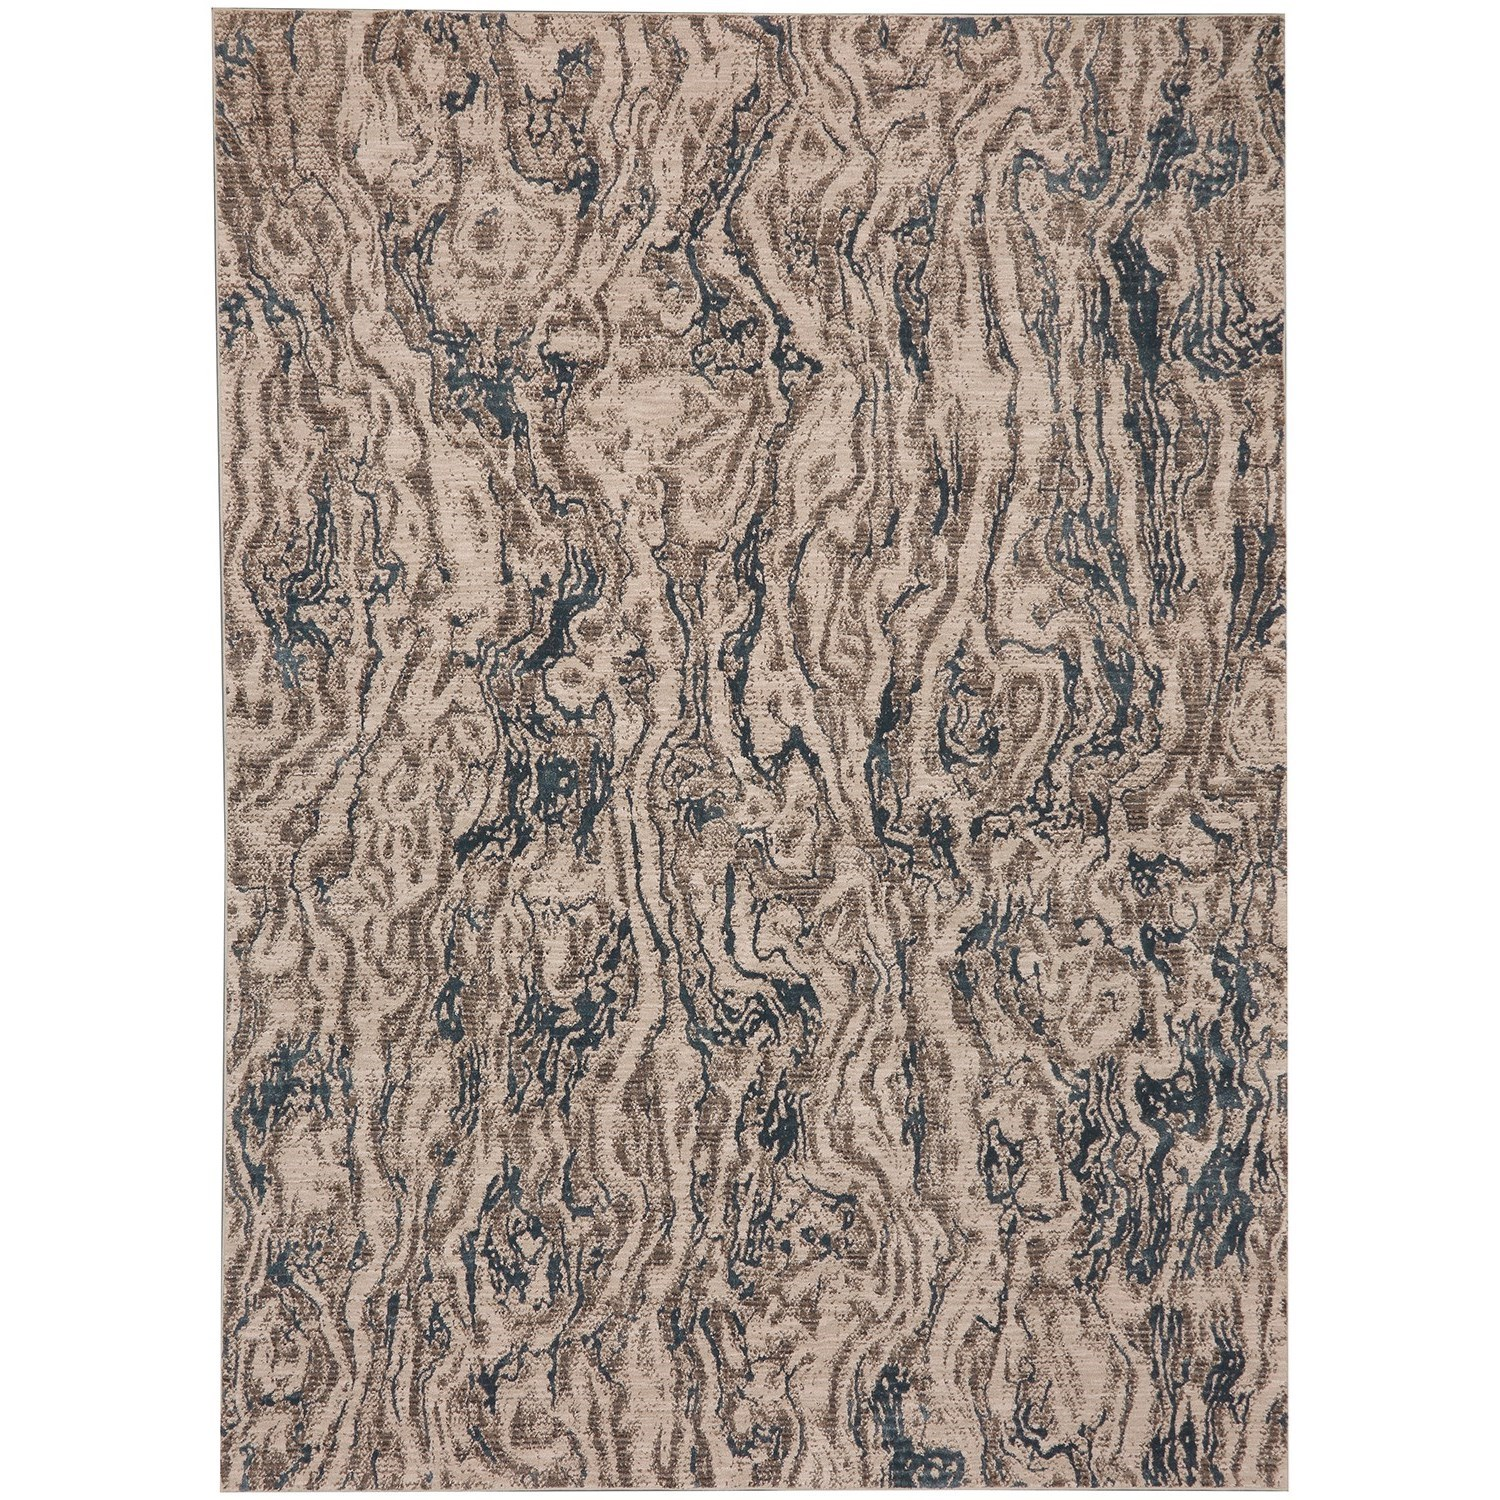 """Enigma 9' 6""""x12' 11"""" Rectangle Abstract Area Rug by Karastan Rugs at Darvin Furniture"""